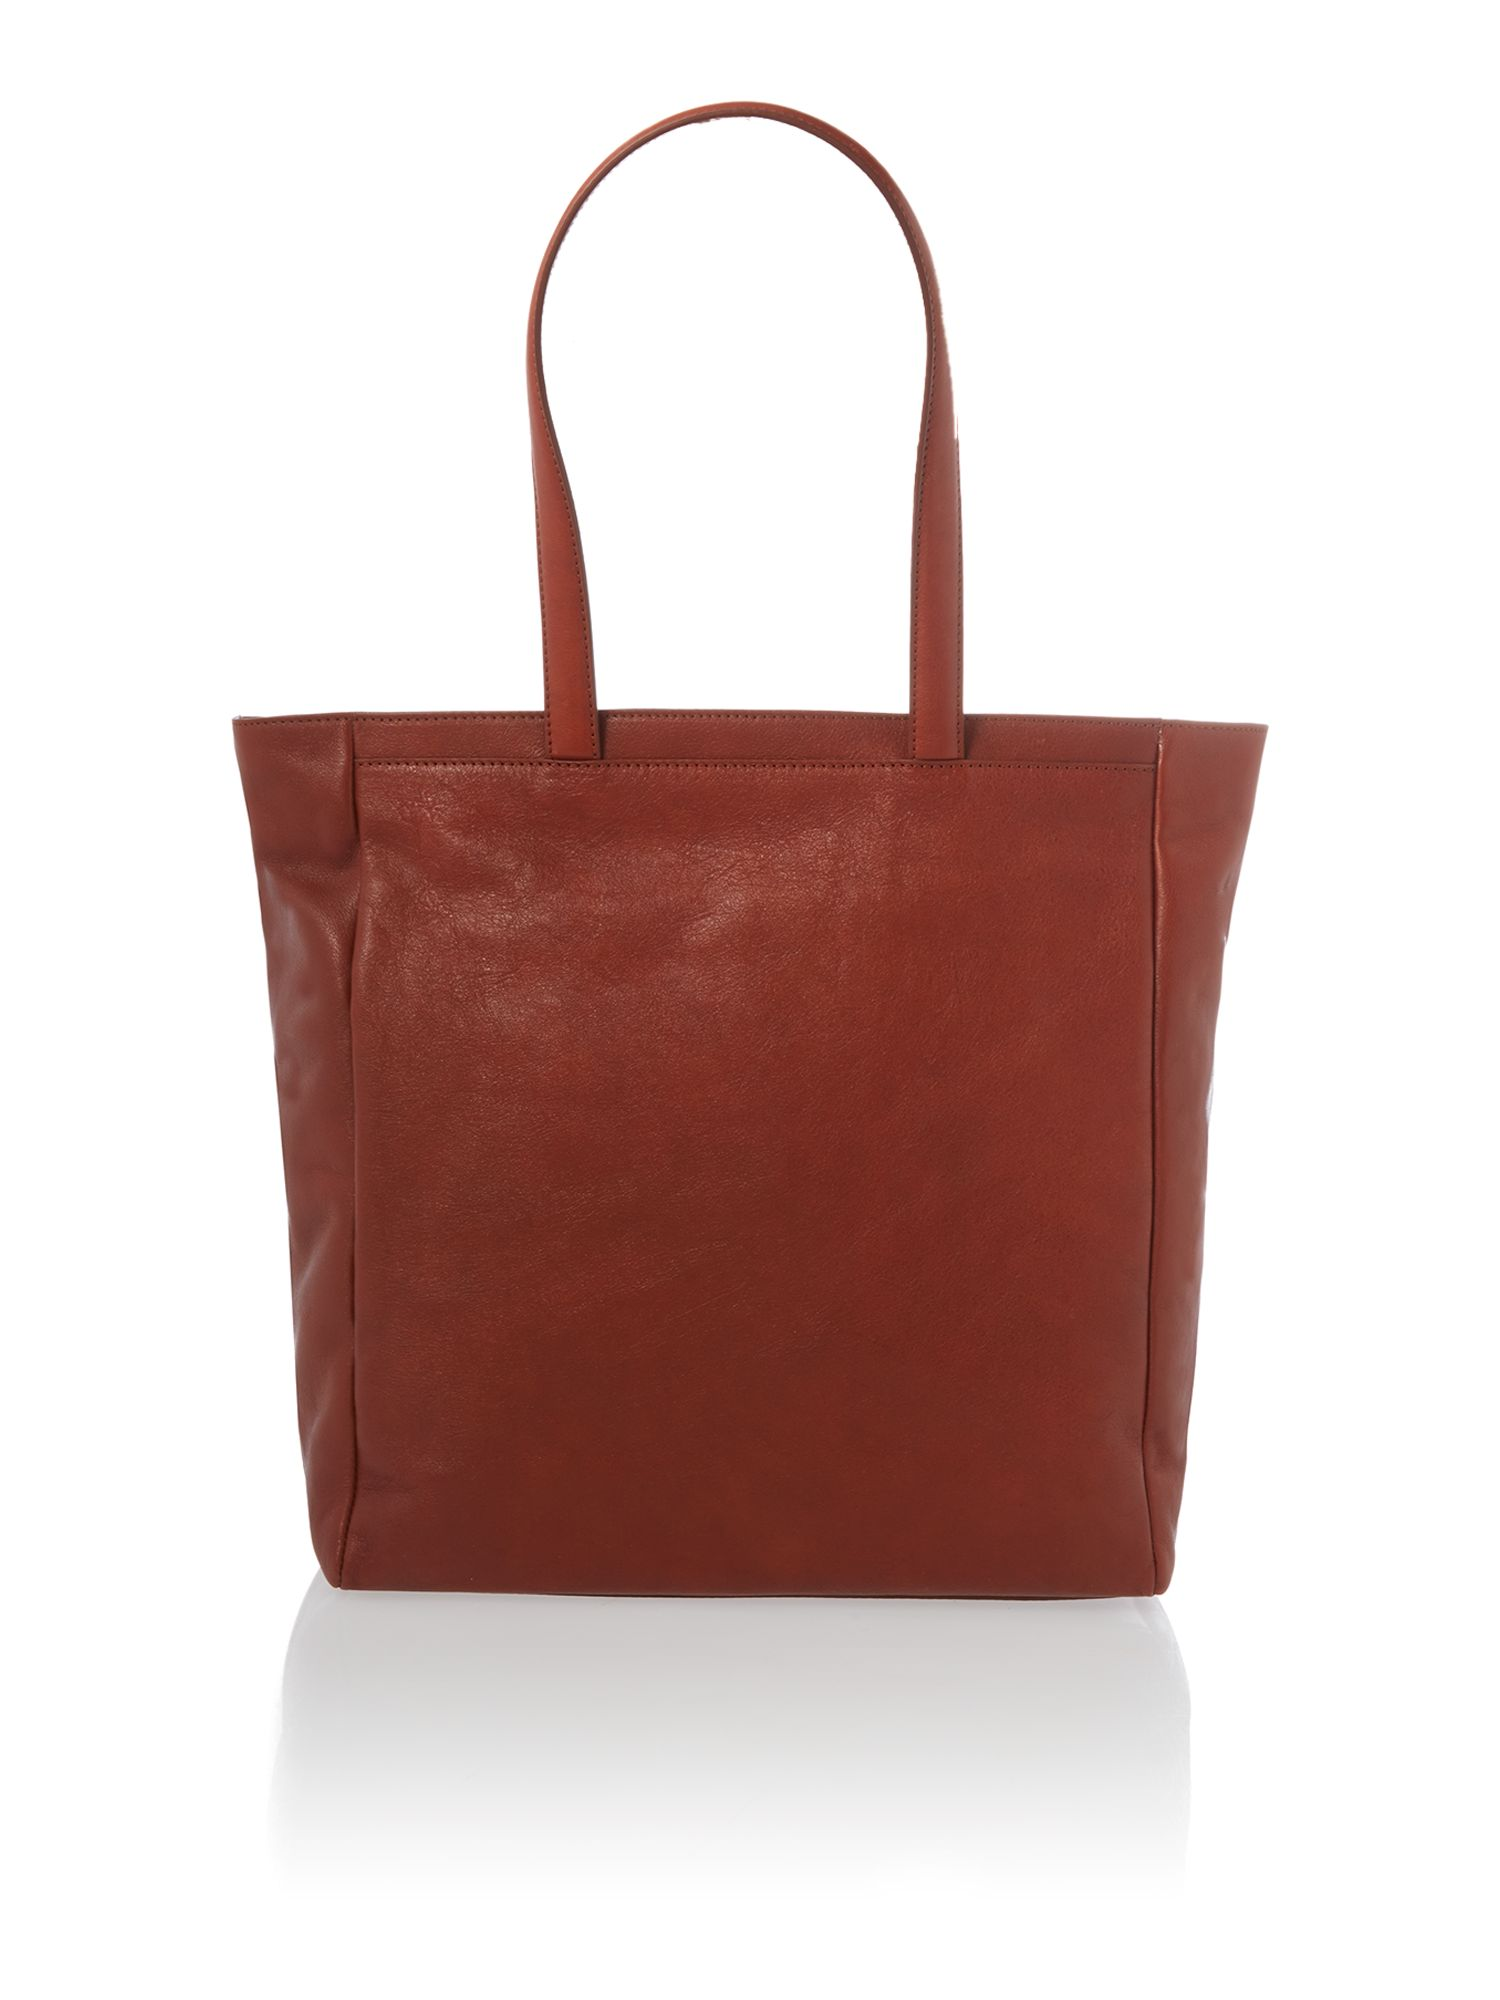 Ada tan tote bag